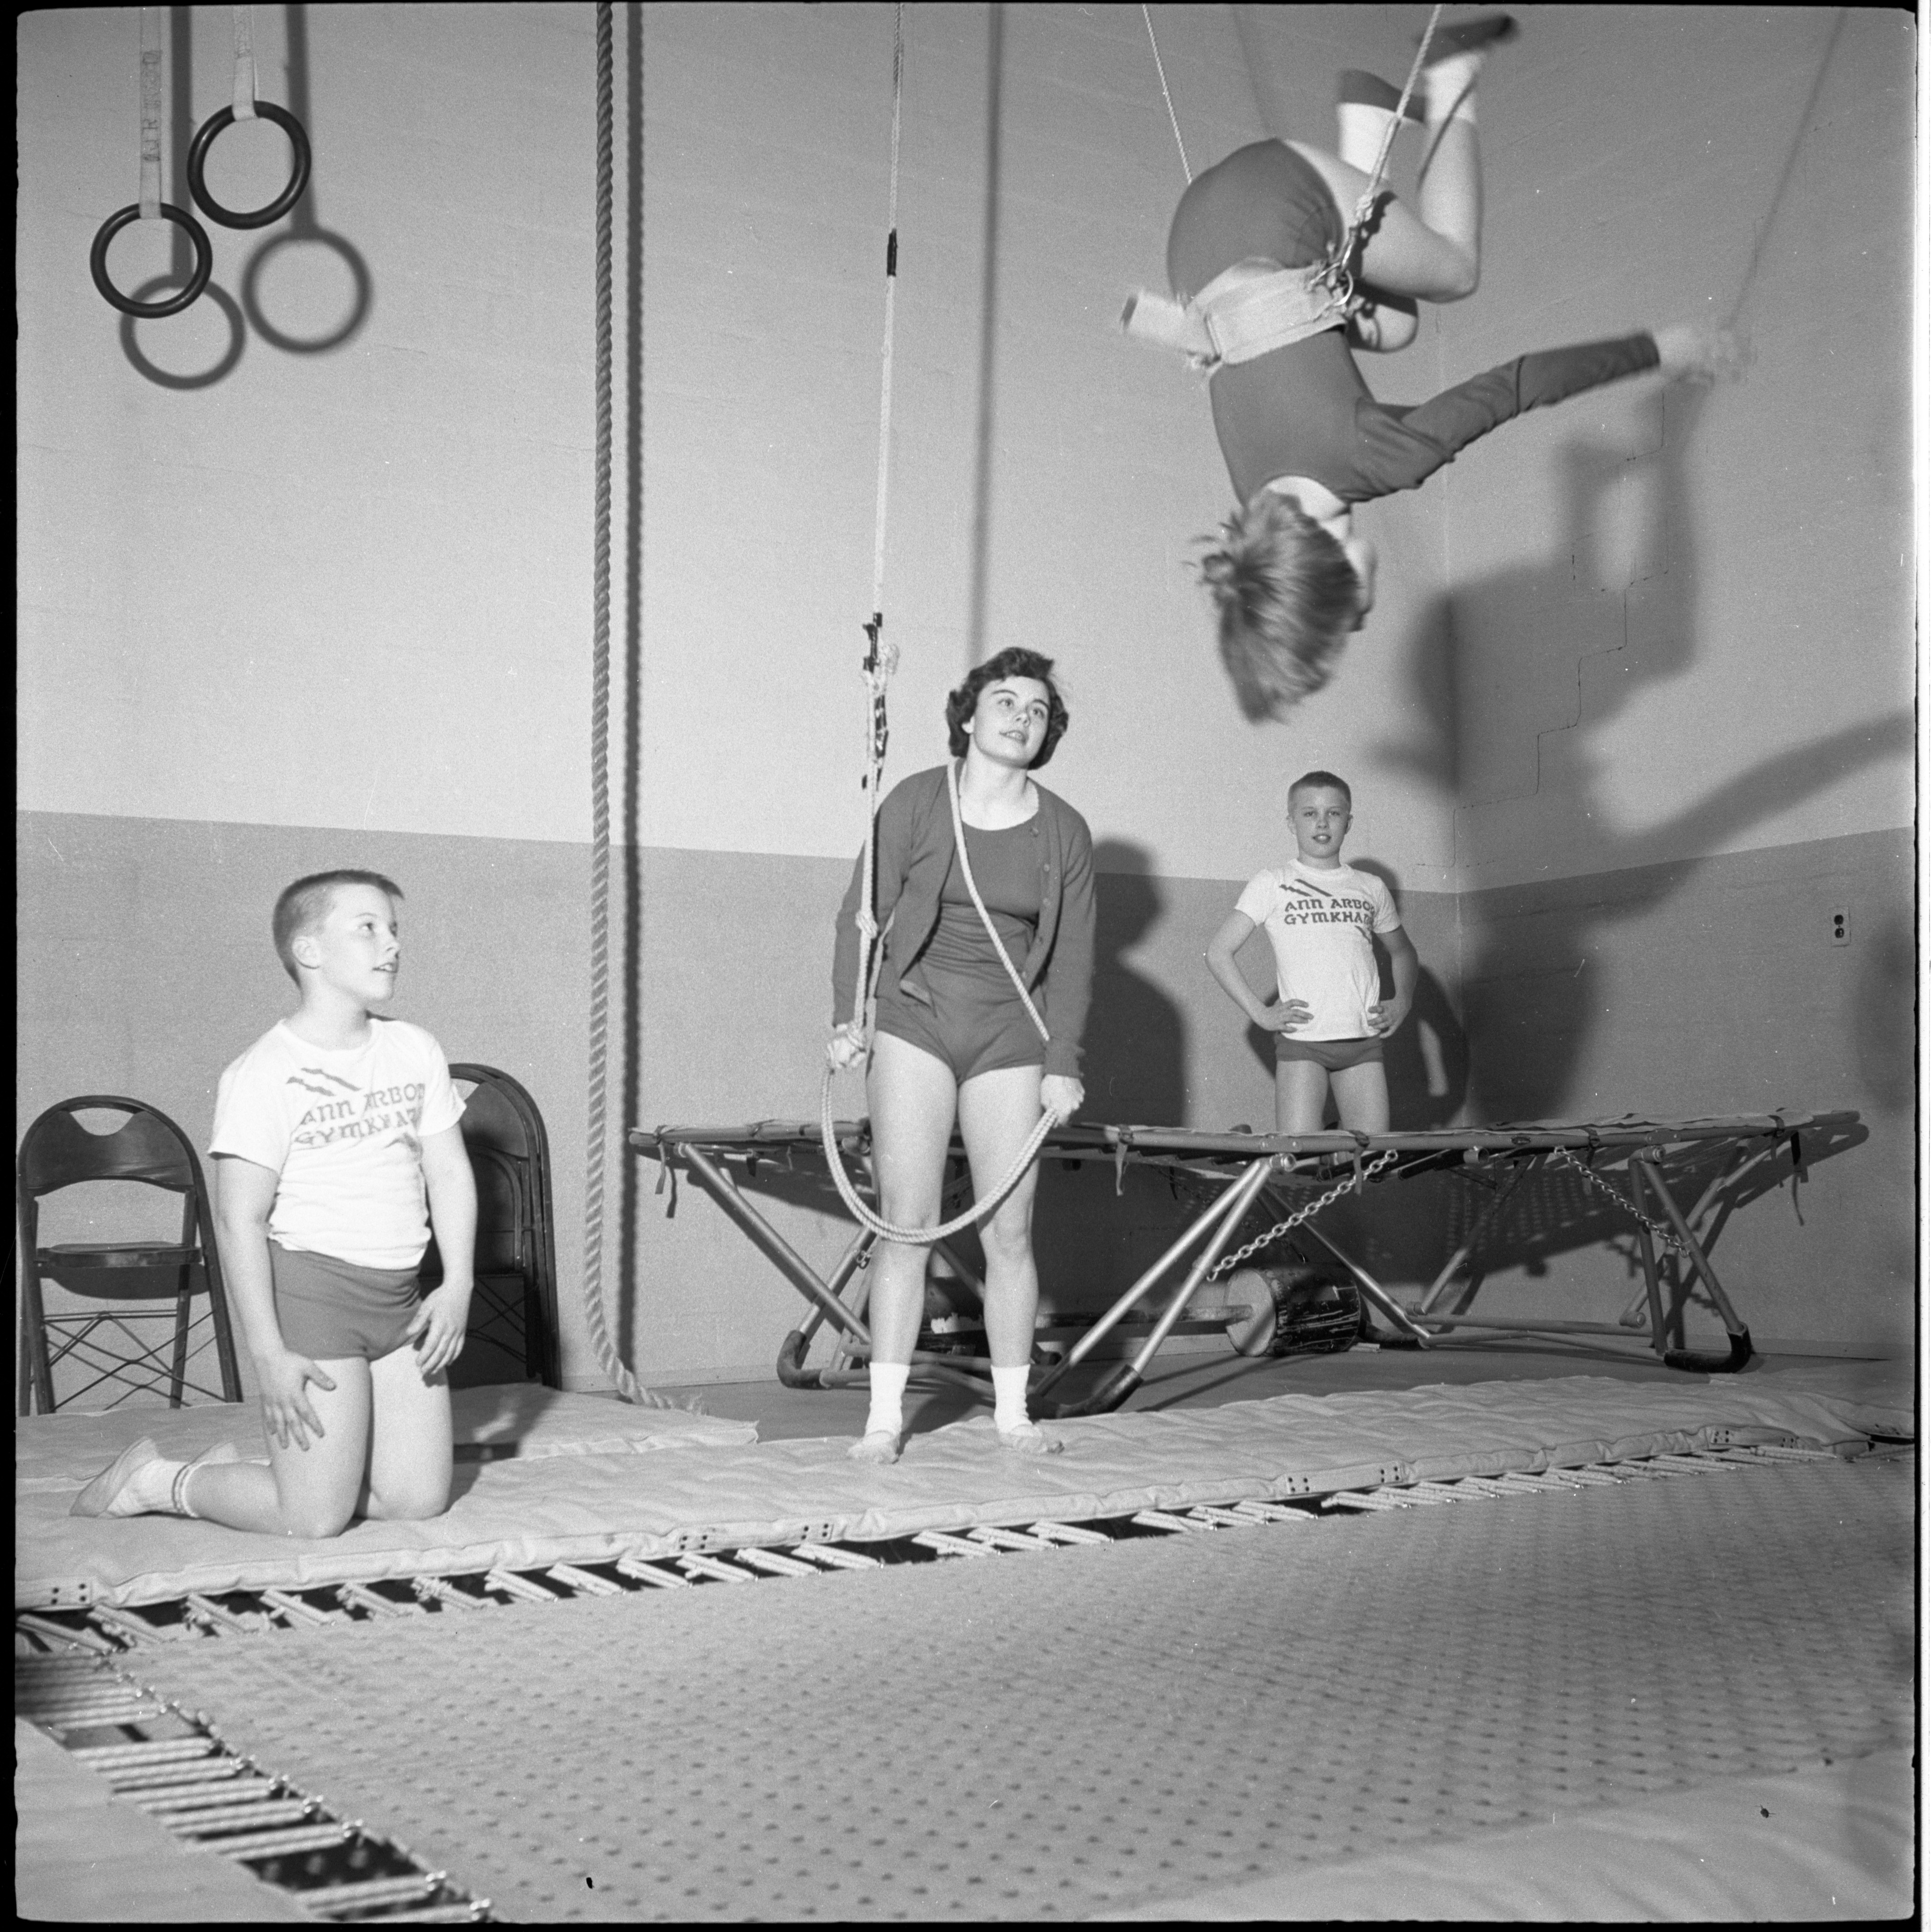 Susie Huntzicker Practices Her Competitive Trampoline Routine At The Ann Arbor Gymkhana, April 1960 image